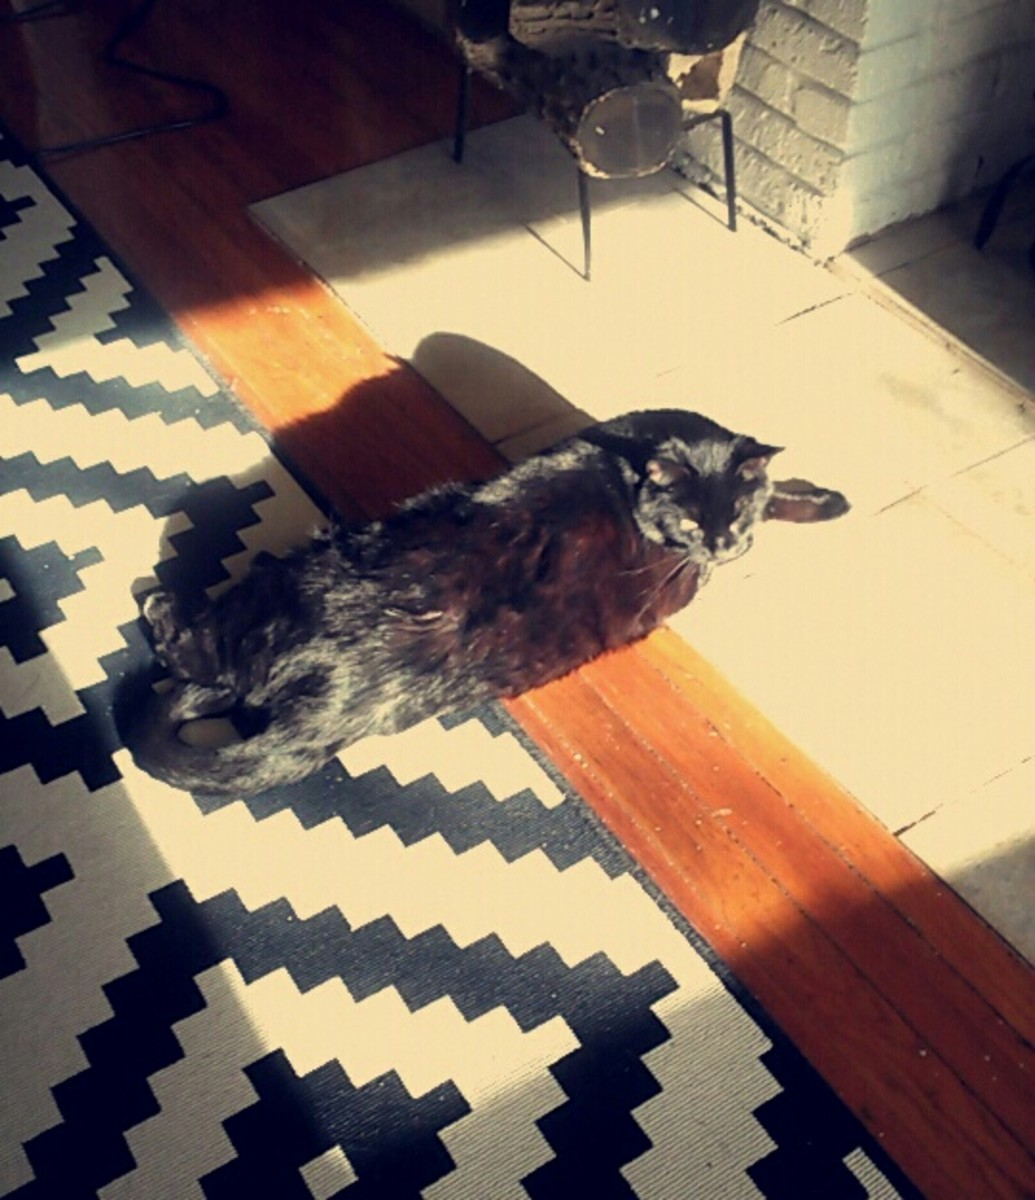 Naturally, he picks the one square of sunlight